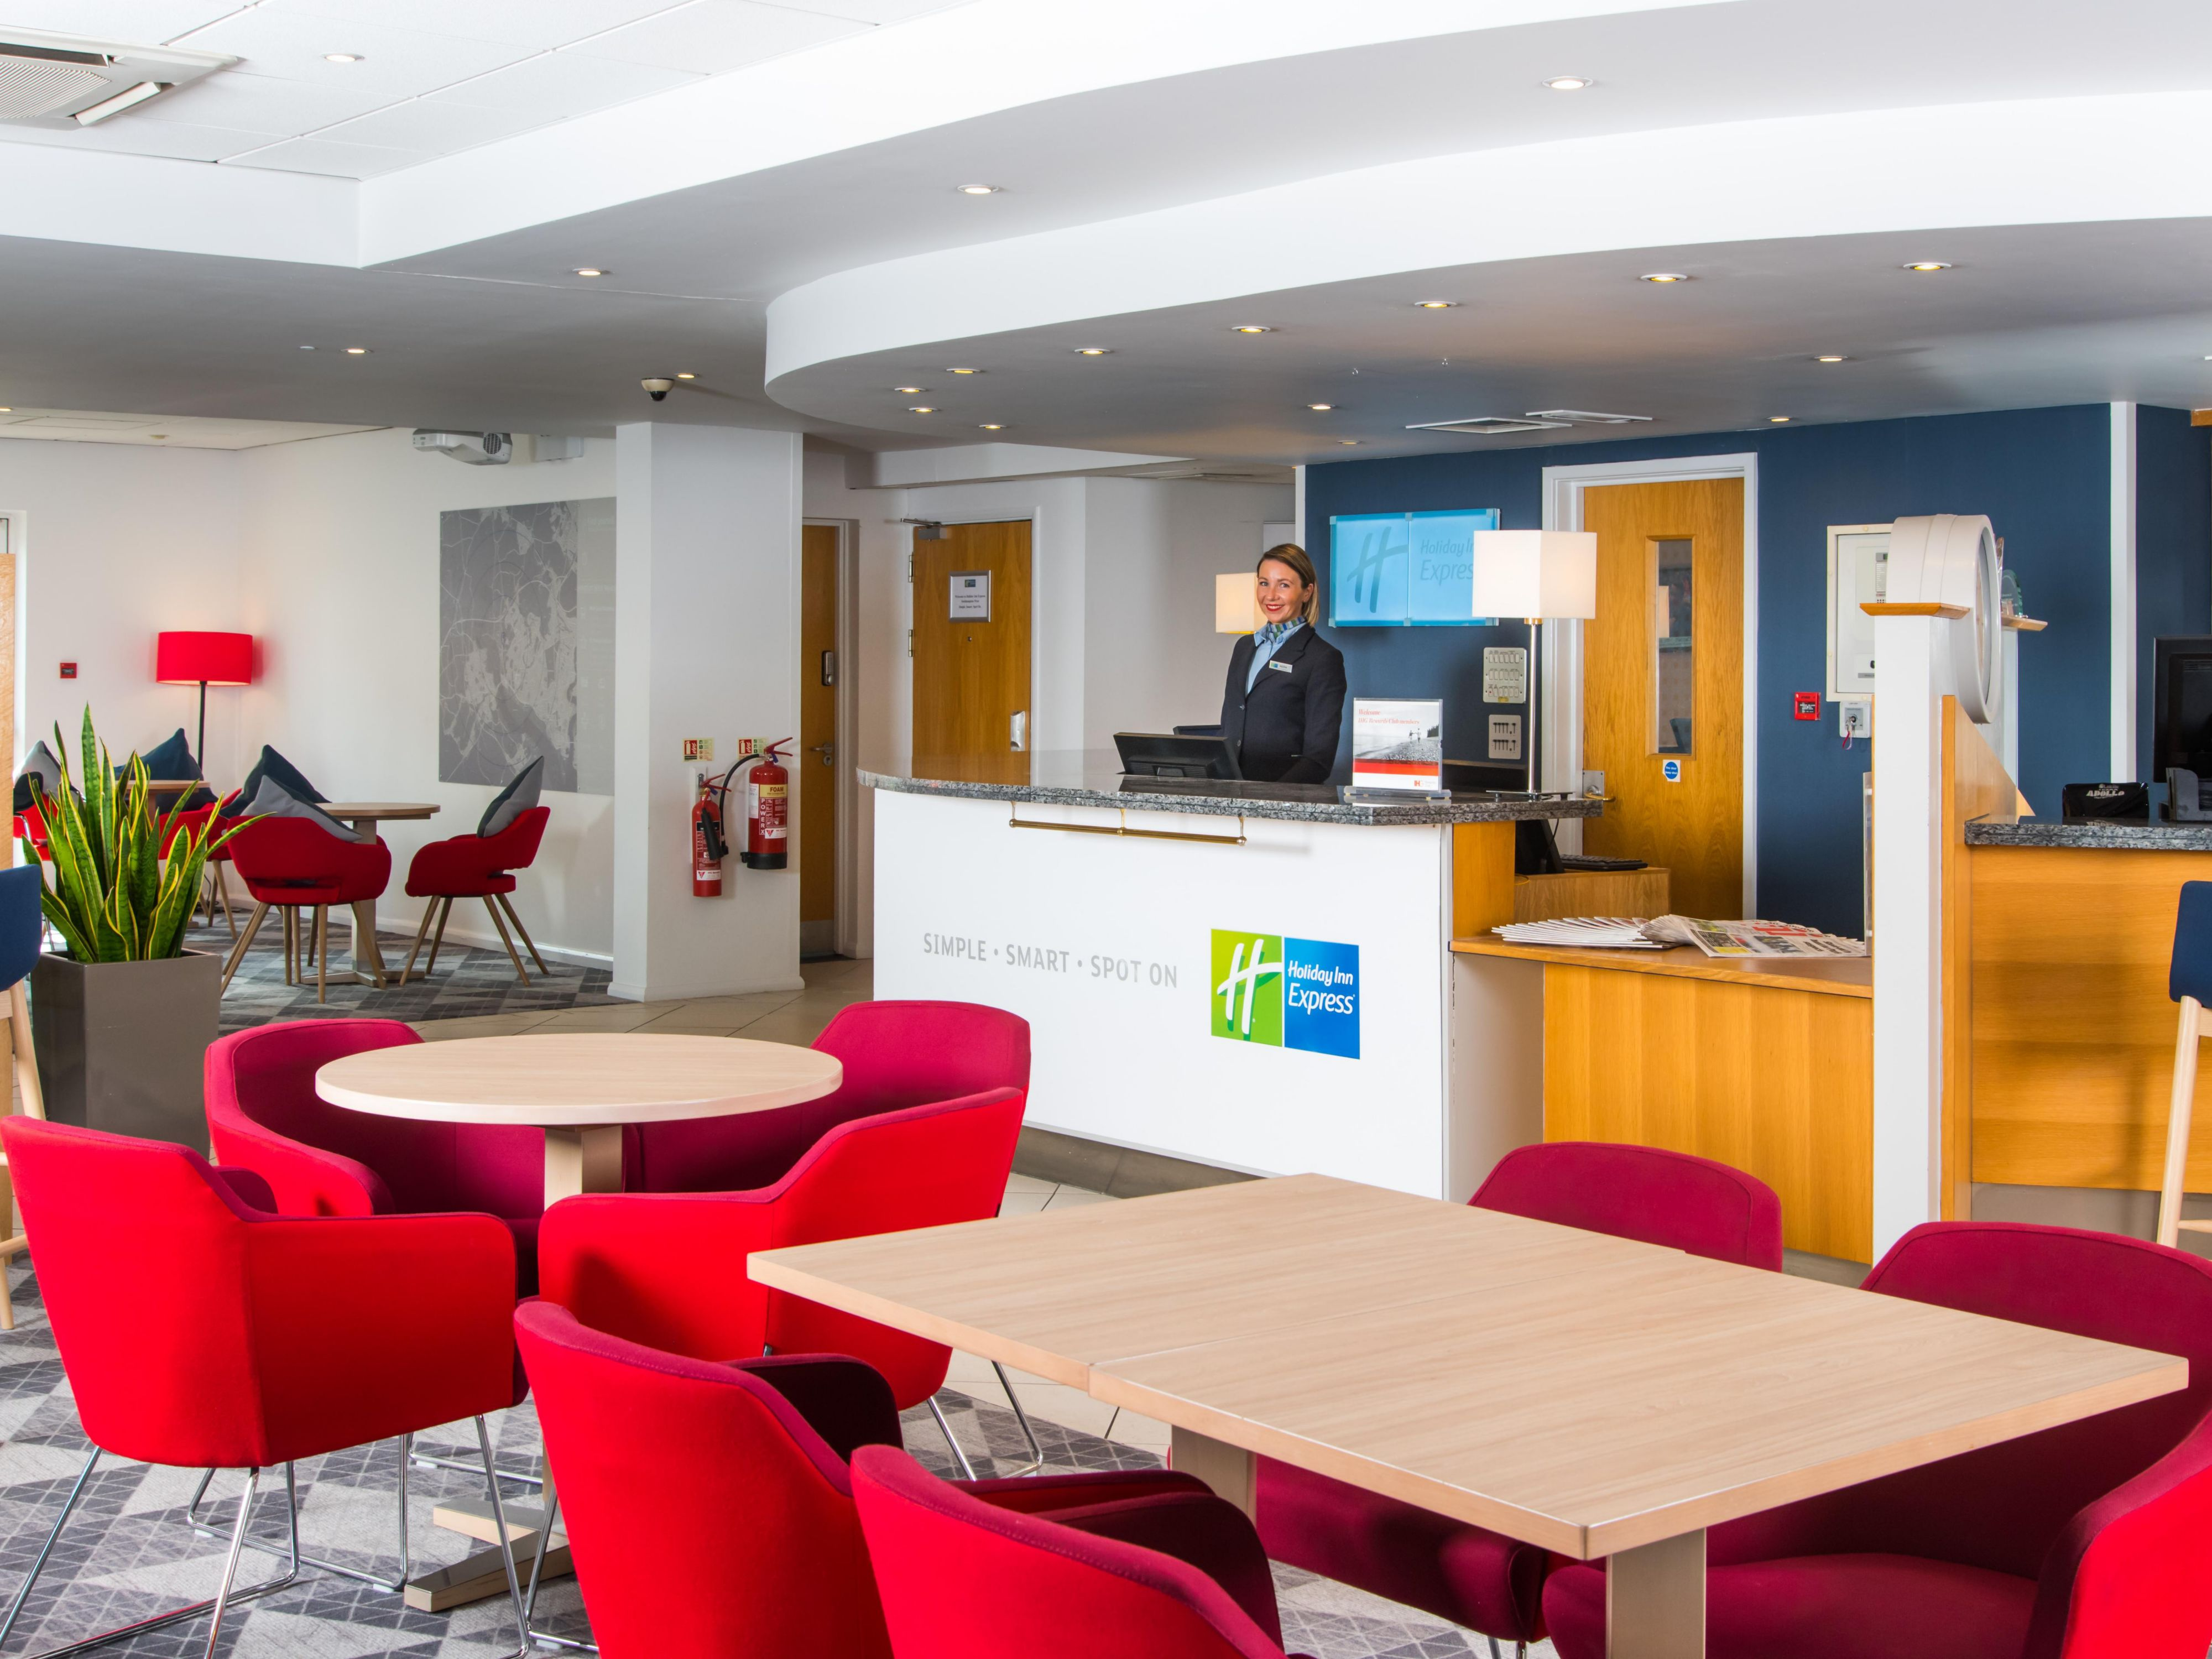 Our recently refurbished lounge is bright and modern